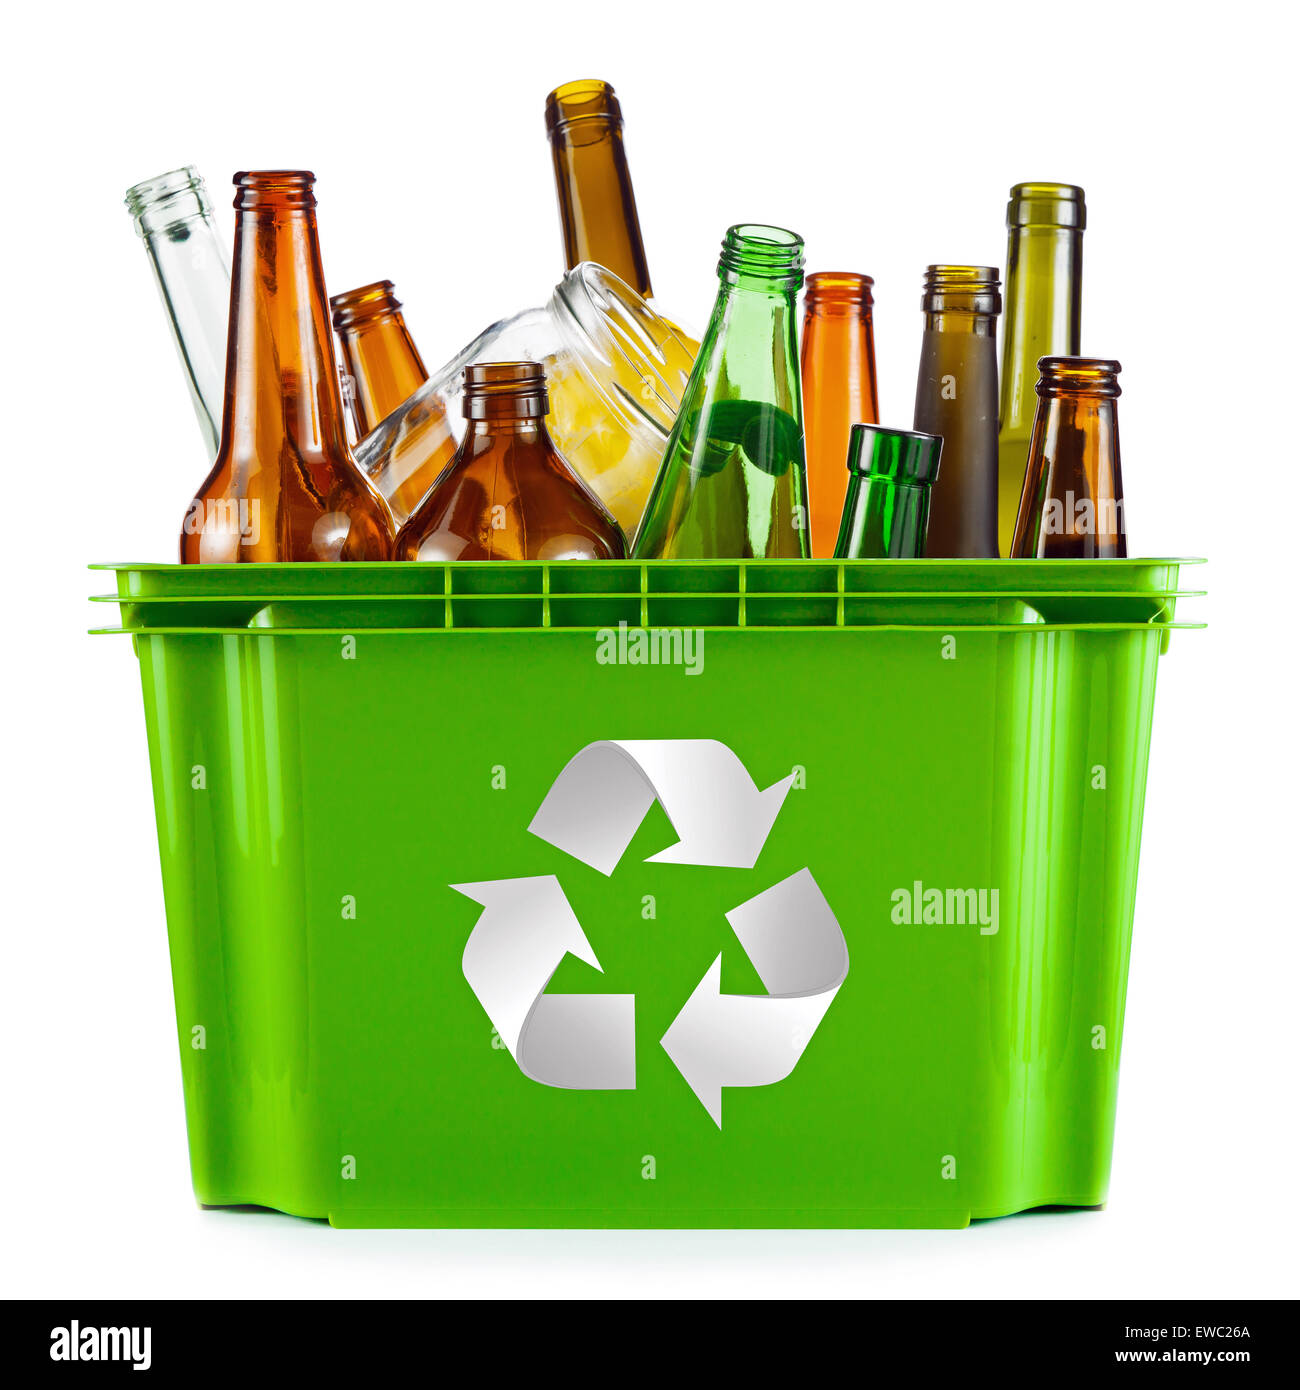 Concept - Recyclage du verre bac plein Photo Stock